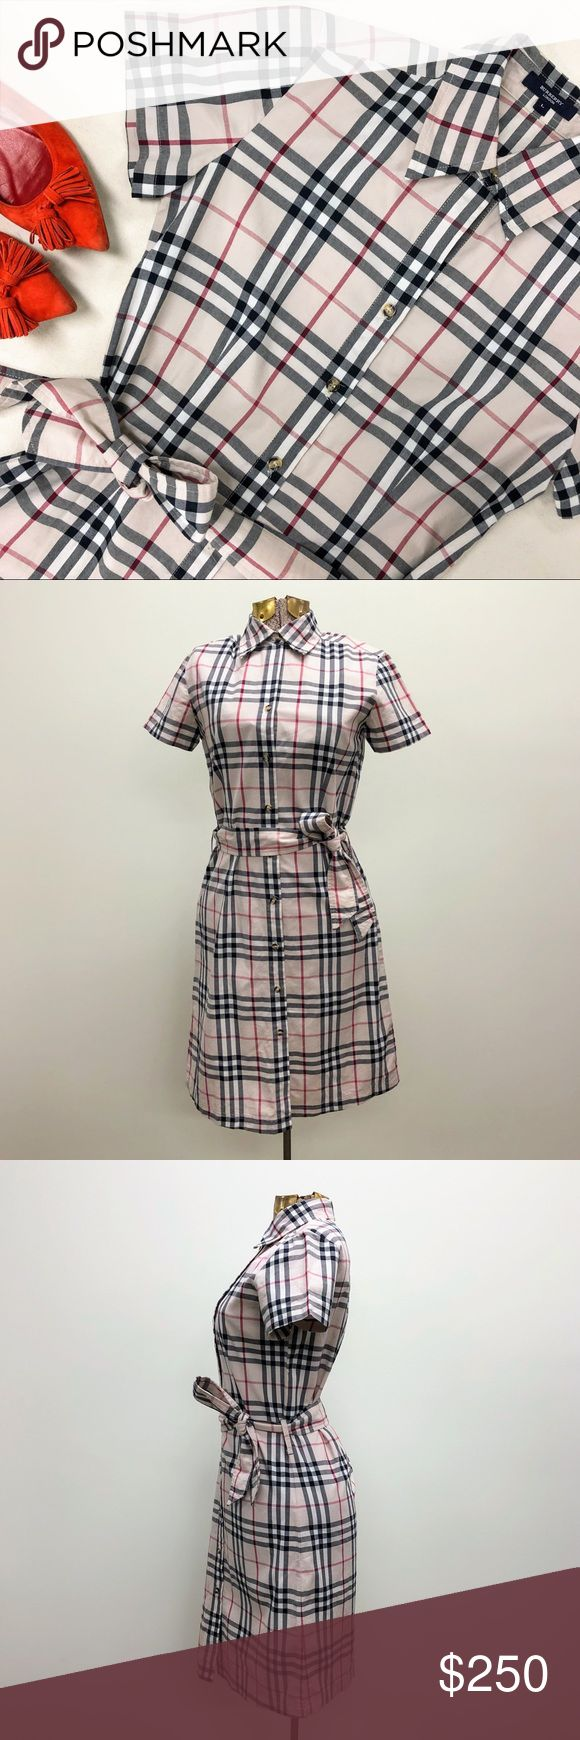 """Authentic Burberry printed shirt dress Burberry puts its signature stamp on the classic shirt dress, covering this effortlessly polished style with the iconic plaid print, and adding an optional sash belt for figure-flattering definition. * Point collar, short sleeves * Detached sash belt * allover signature check print * Fits SMALL * Approx. 37"""" from back of neck to hem * Shoulders 16"""" * Bust 36"""" * Waist 33"""" * Hips 39"""" Burberry Dresses Mini"""